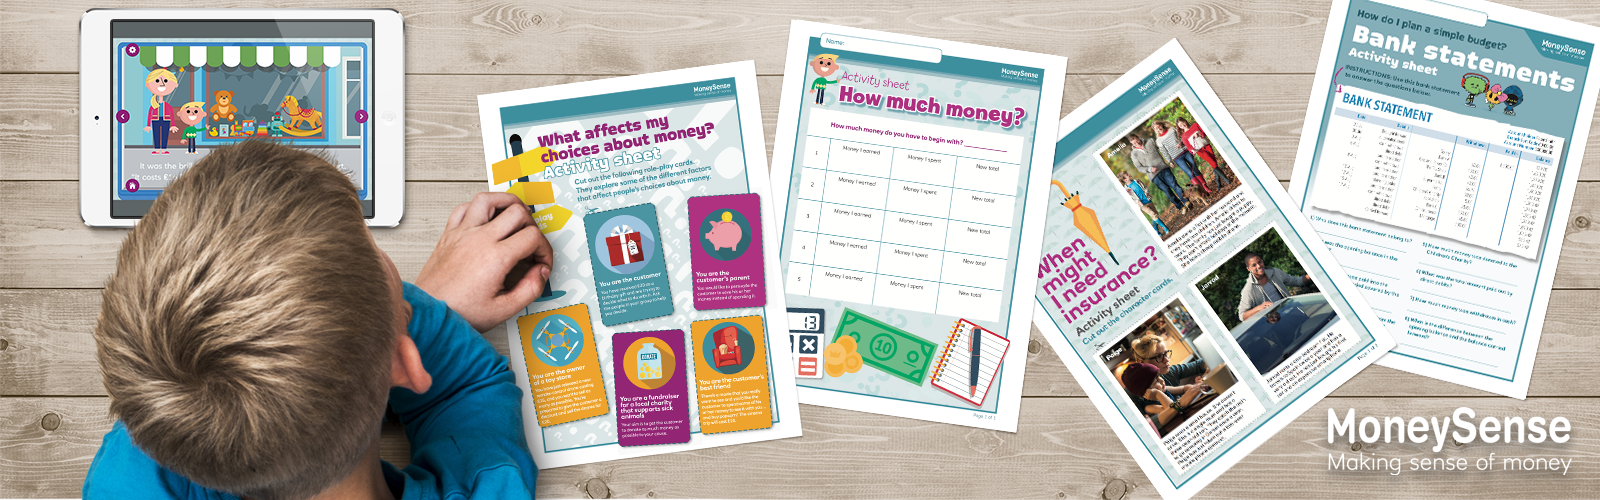 Child looking at a selection of brightly coloured MoneySense resources